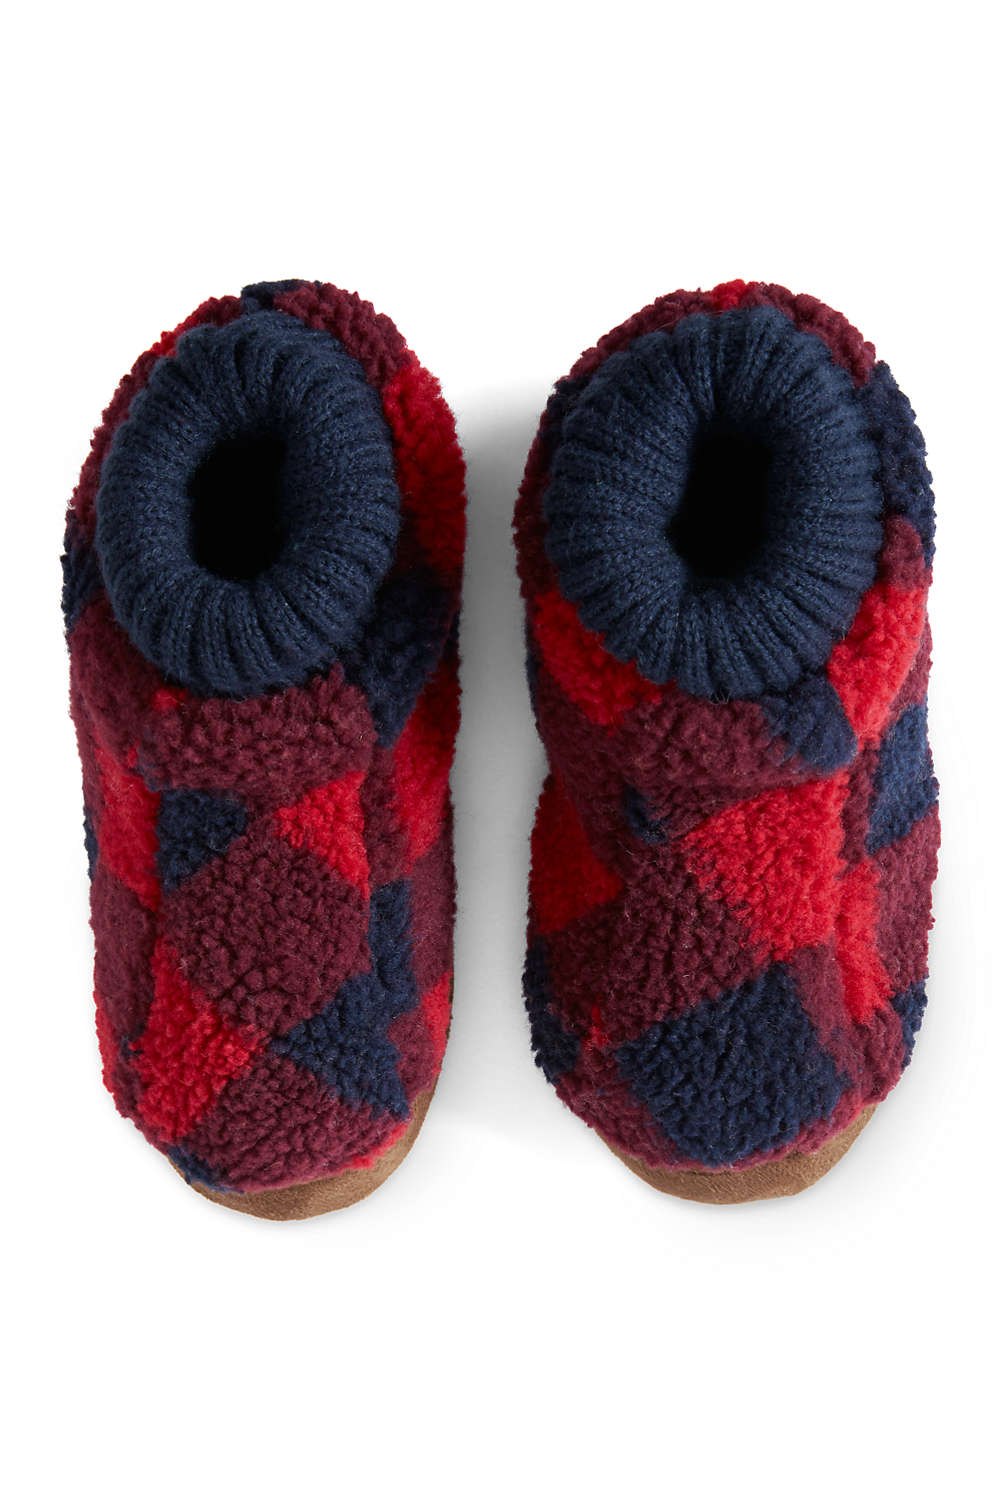 22358371f Toddlers Sherpa Fleece Bootie Slippers from Lands  End